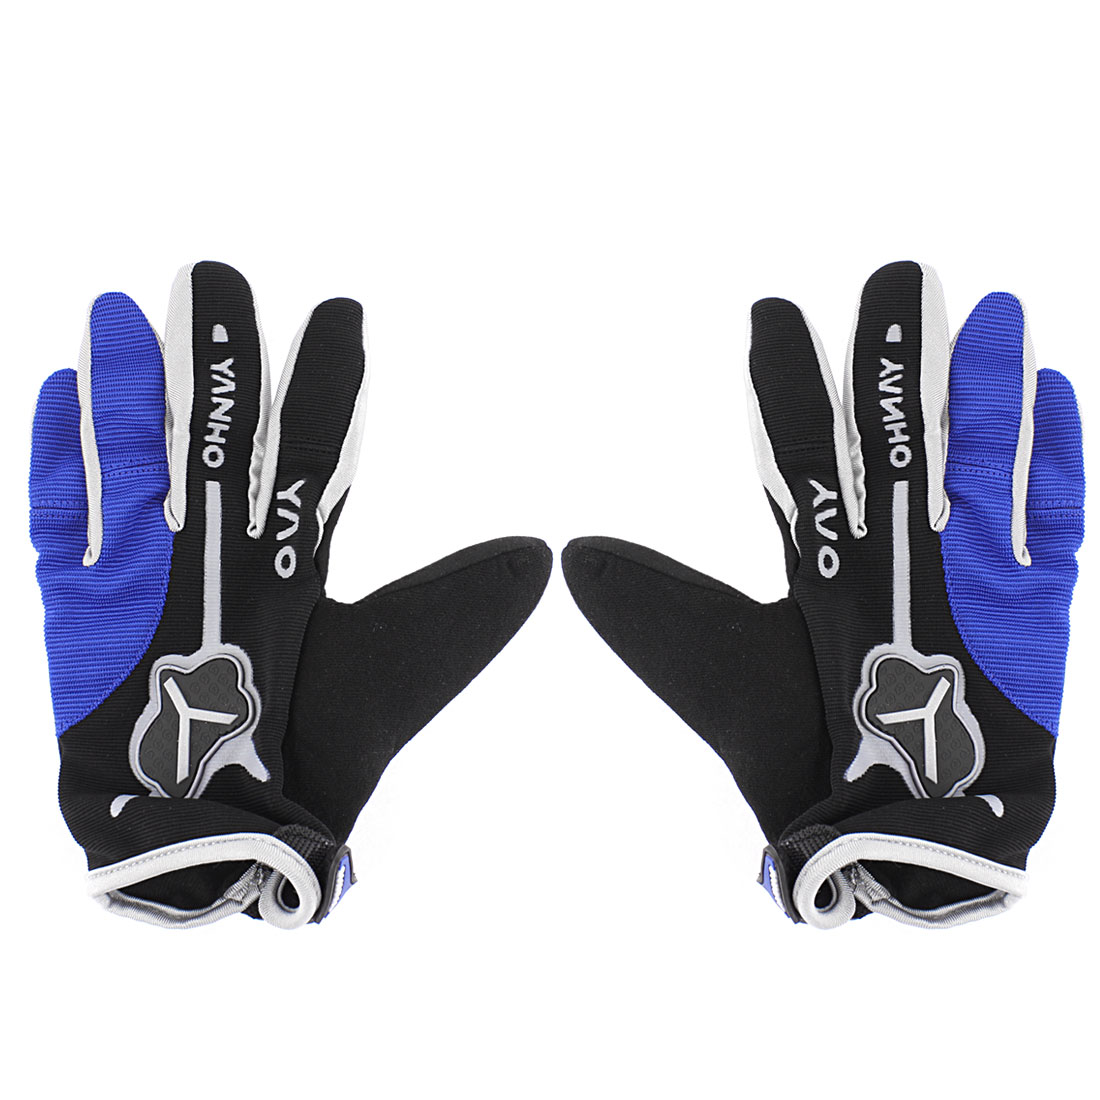 Men Full Finger Sports Cycling Bicycle Riding Gloves Pair